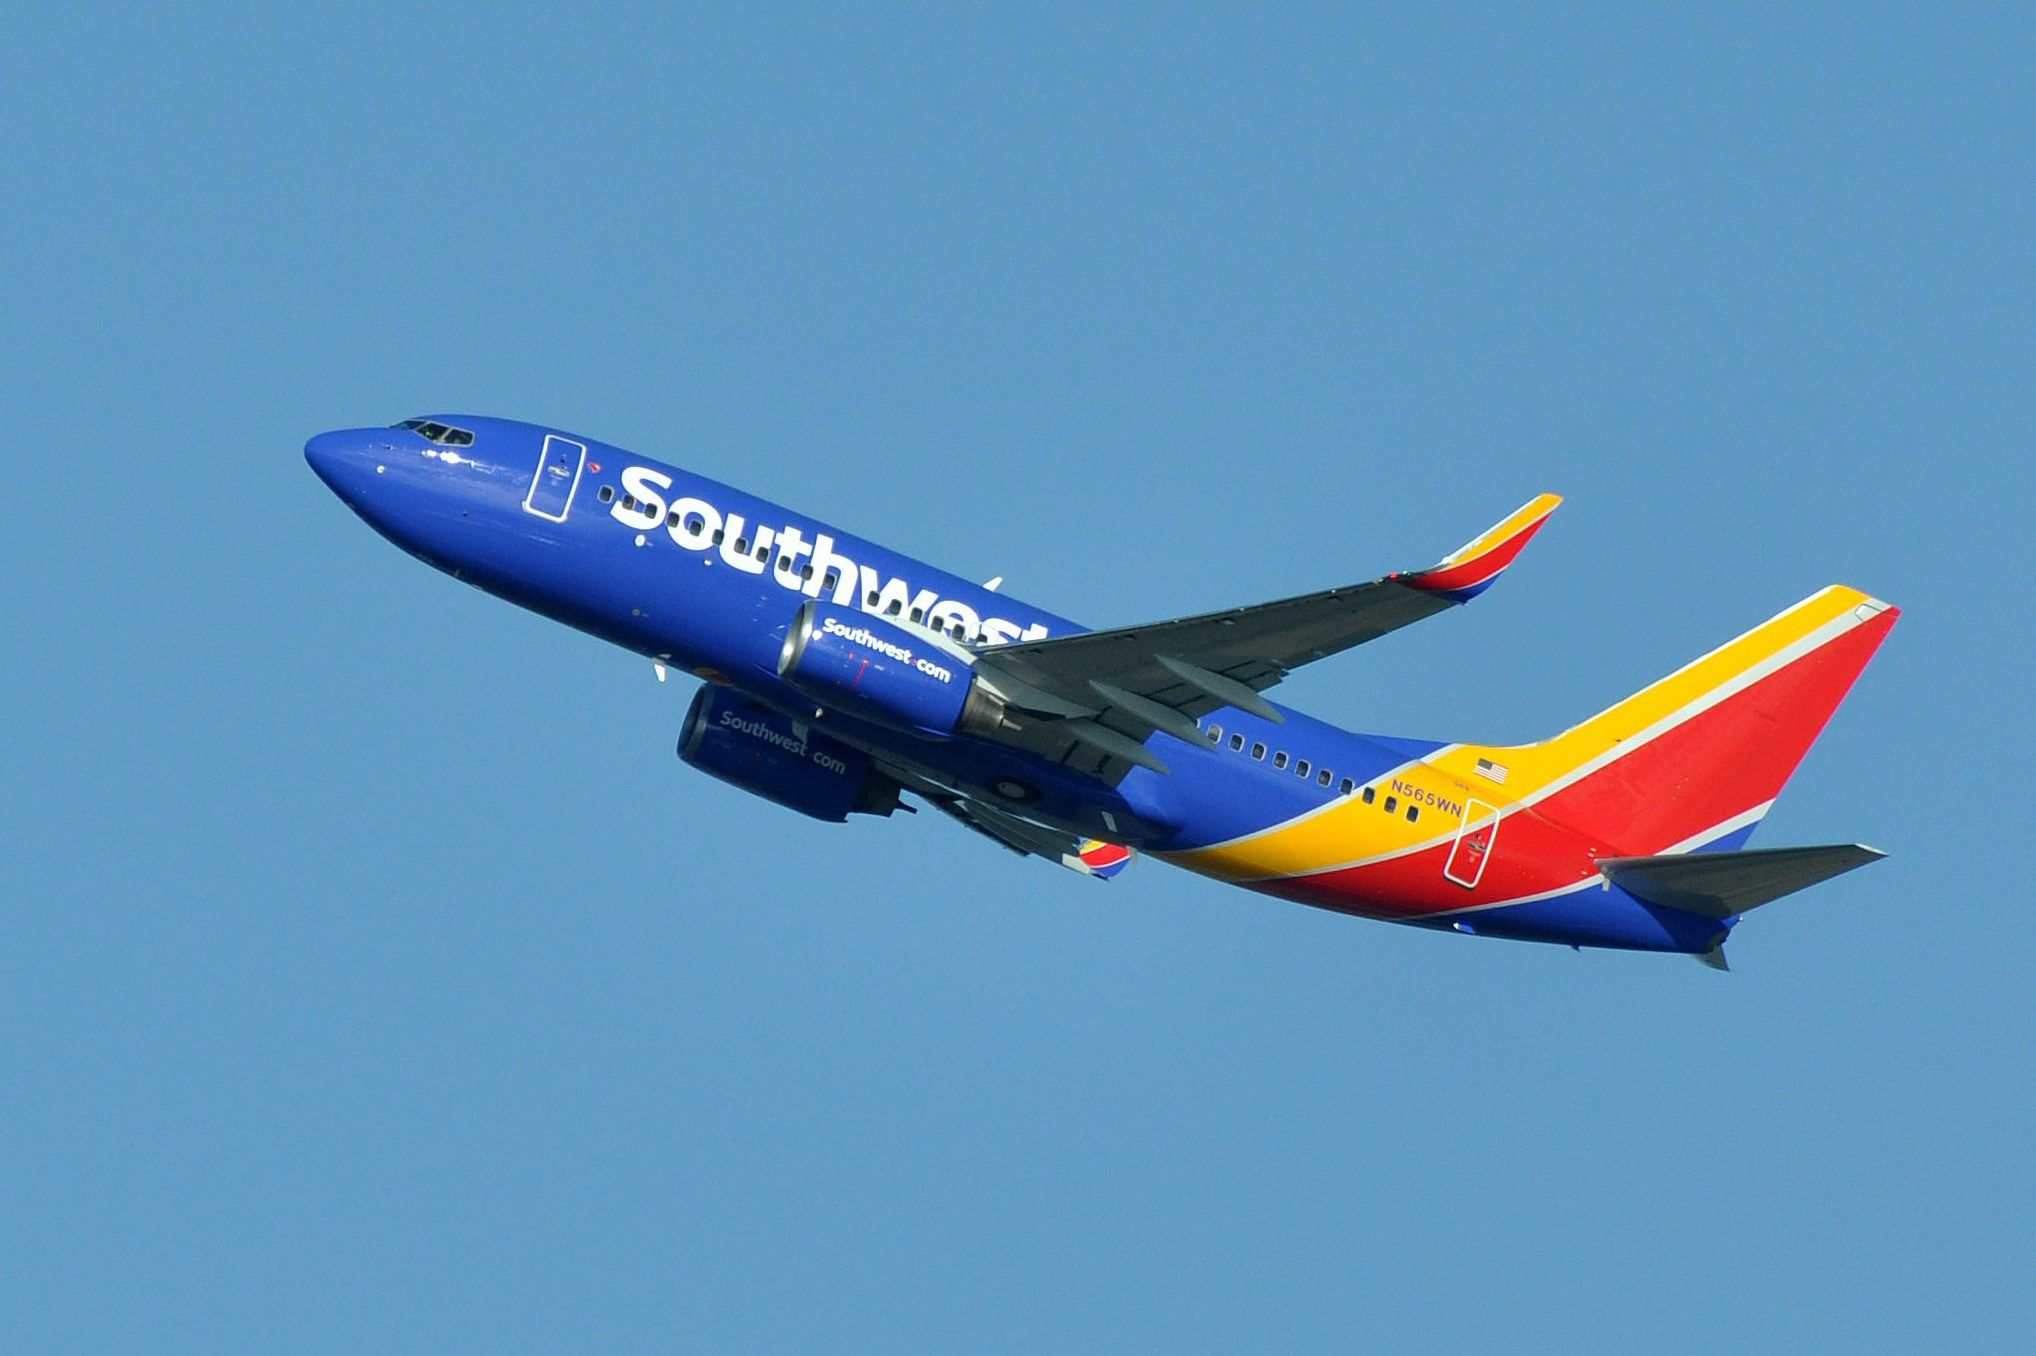 Fly to Disney Free on Southwest Southwest airlines